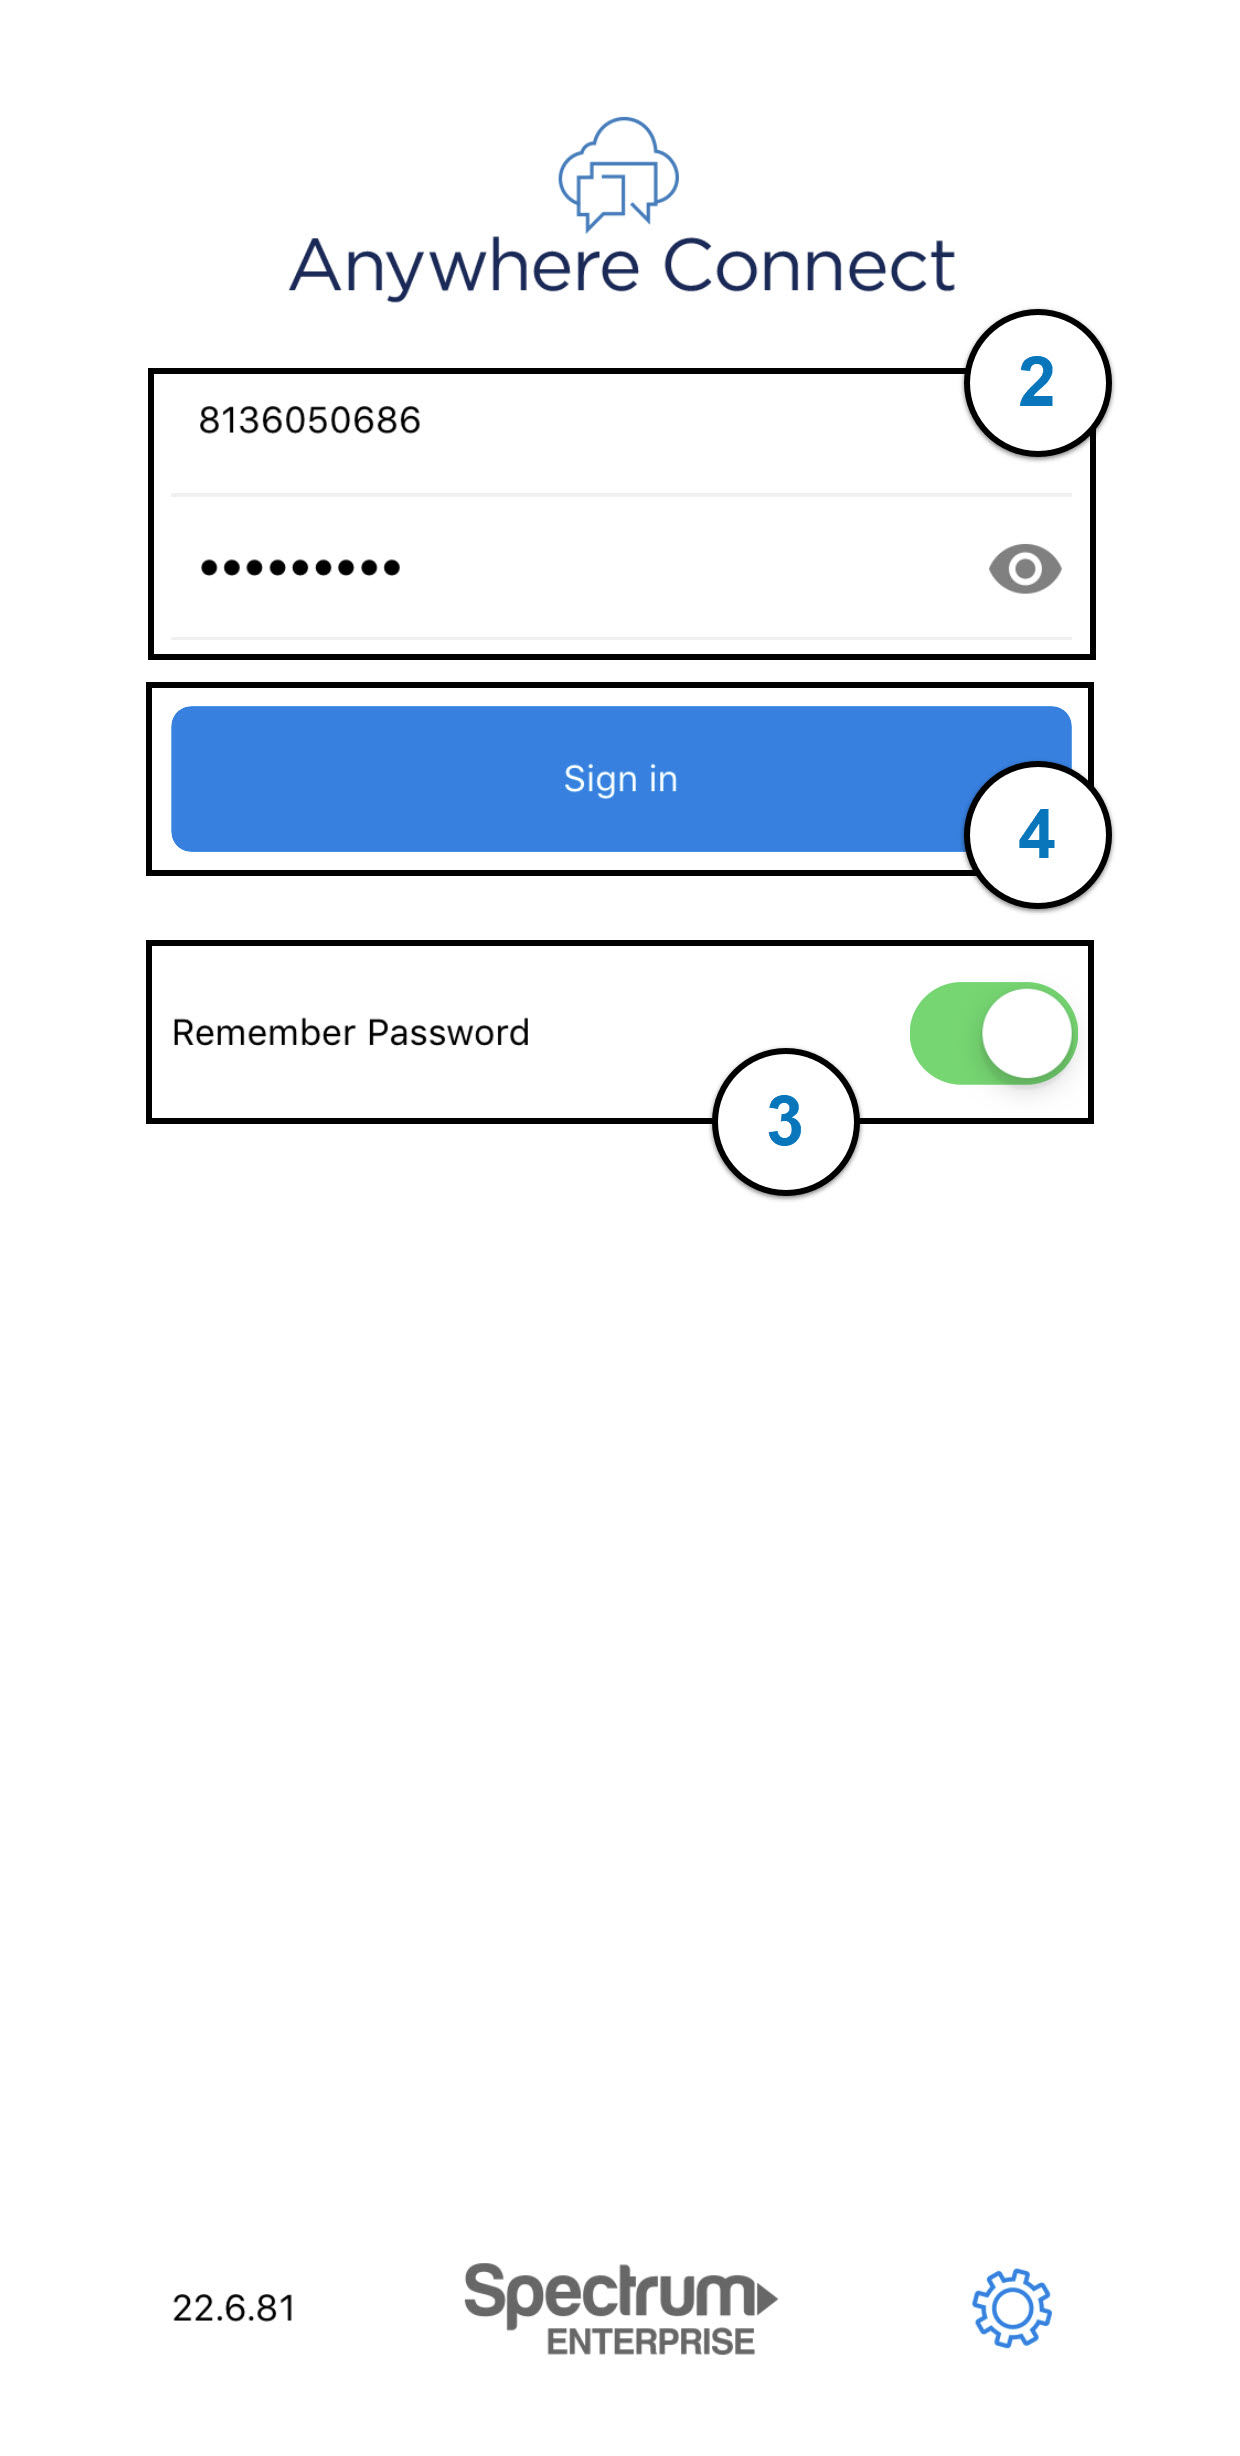 Sign In button is highlighted on Spectrum Enterprise login screen with user name and password fields. Image opens in full resolution in a new tab.